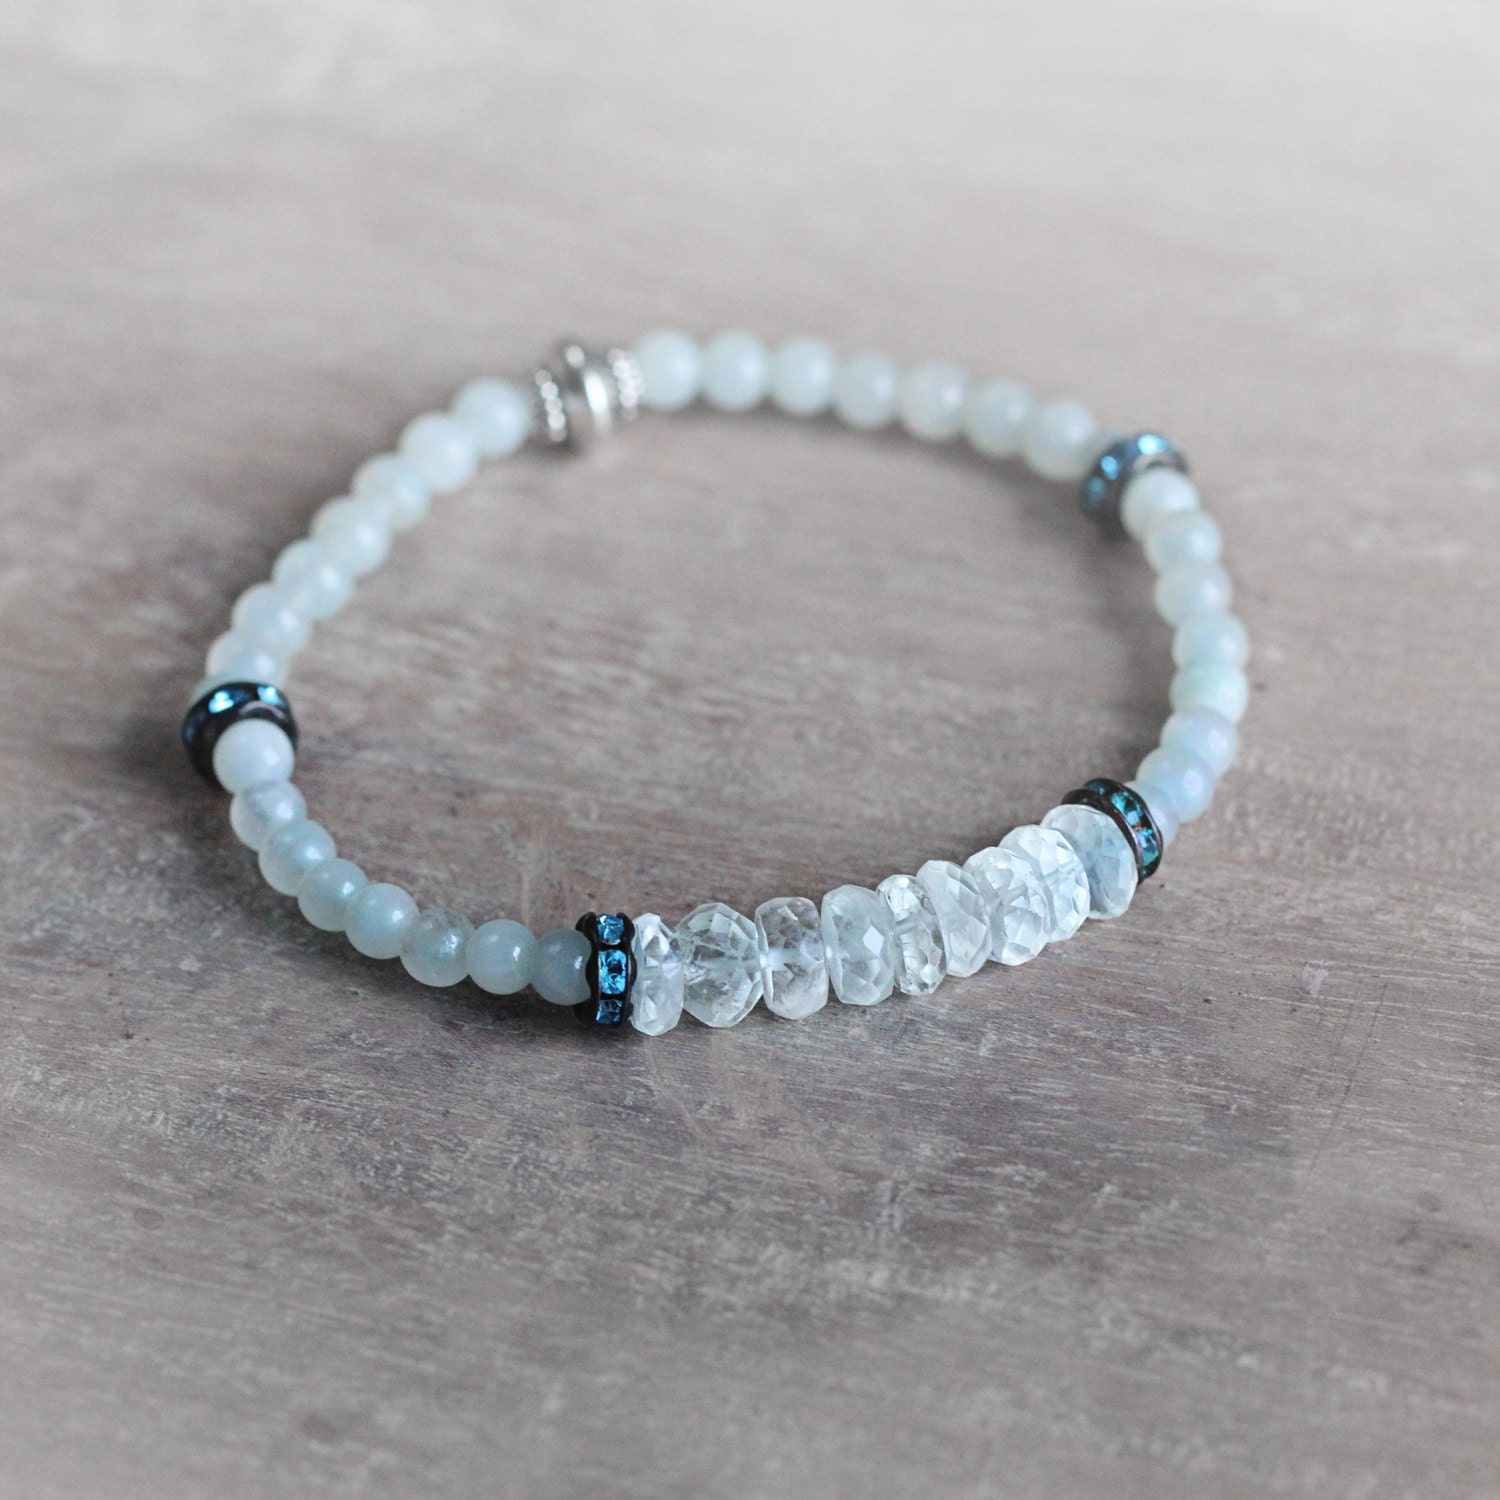 Aquamarine Bracelet - Stretch Bracelet - Aquamarine Jewellery - March Birthstone - Aquamarine Stone Bracelet - Blue Beaded Bracelet